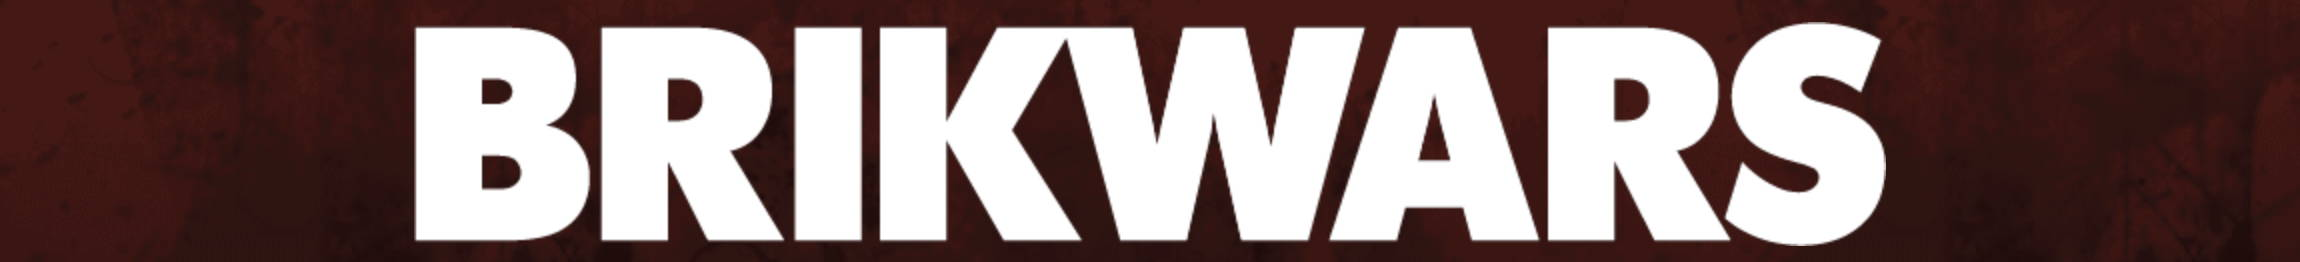 brickwars logo